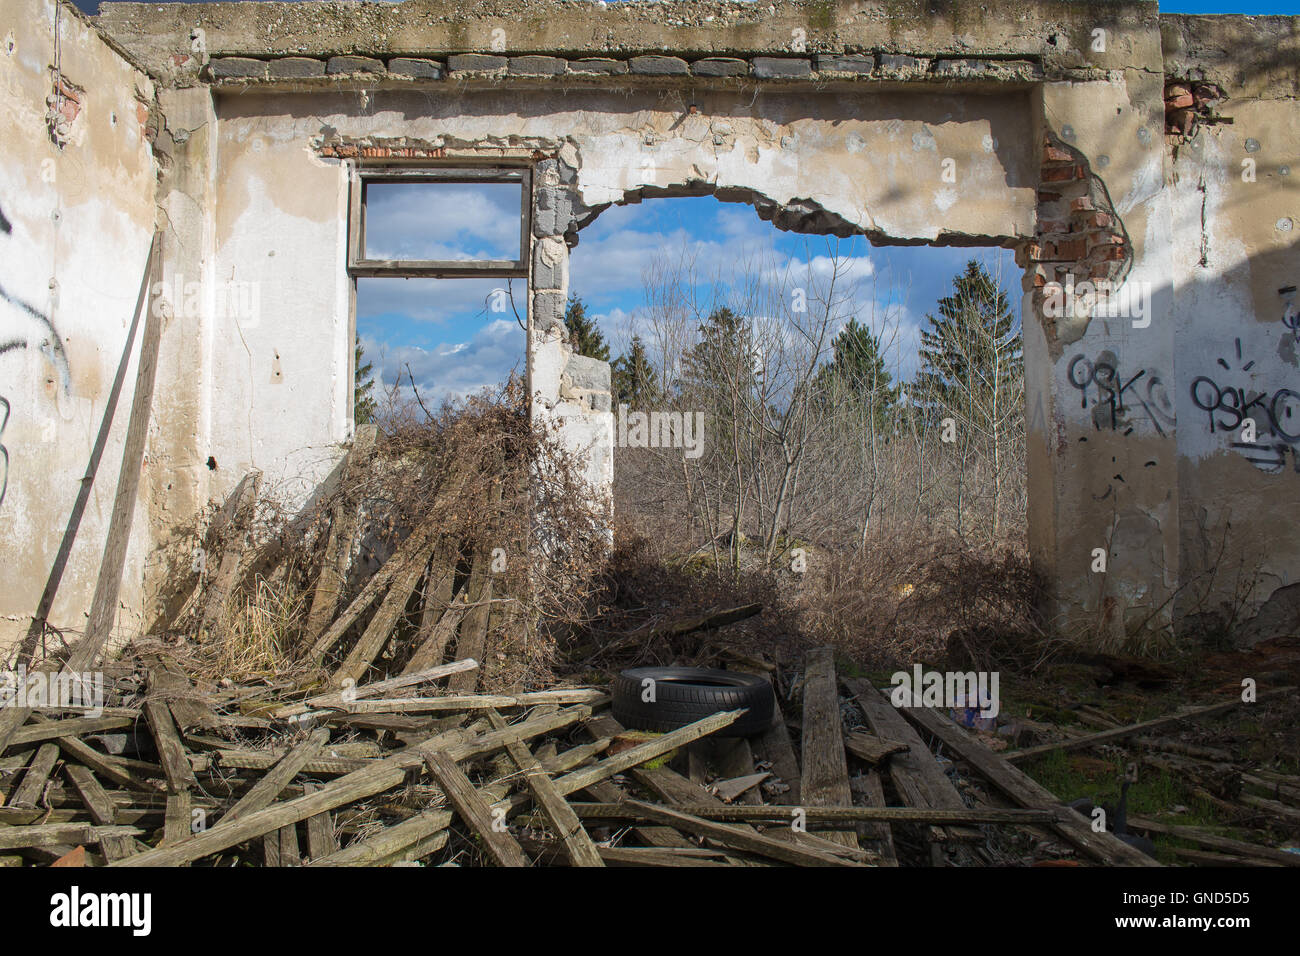 View from the room of an abandoned house, with a broken wall, showing the trees and cloudy sky outside. - Stock Image